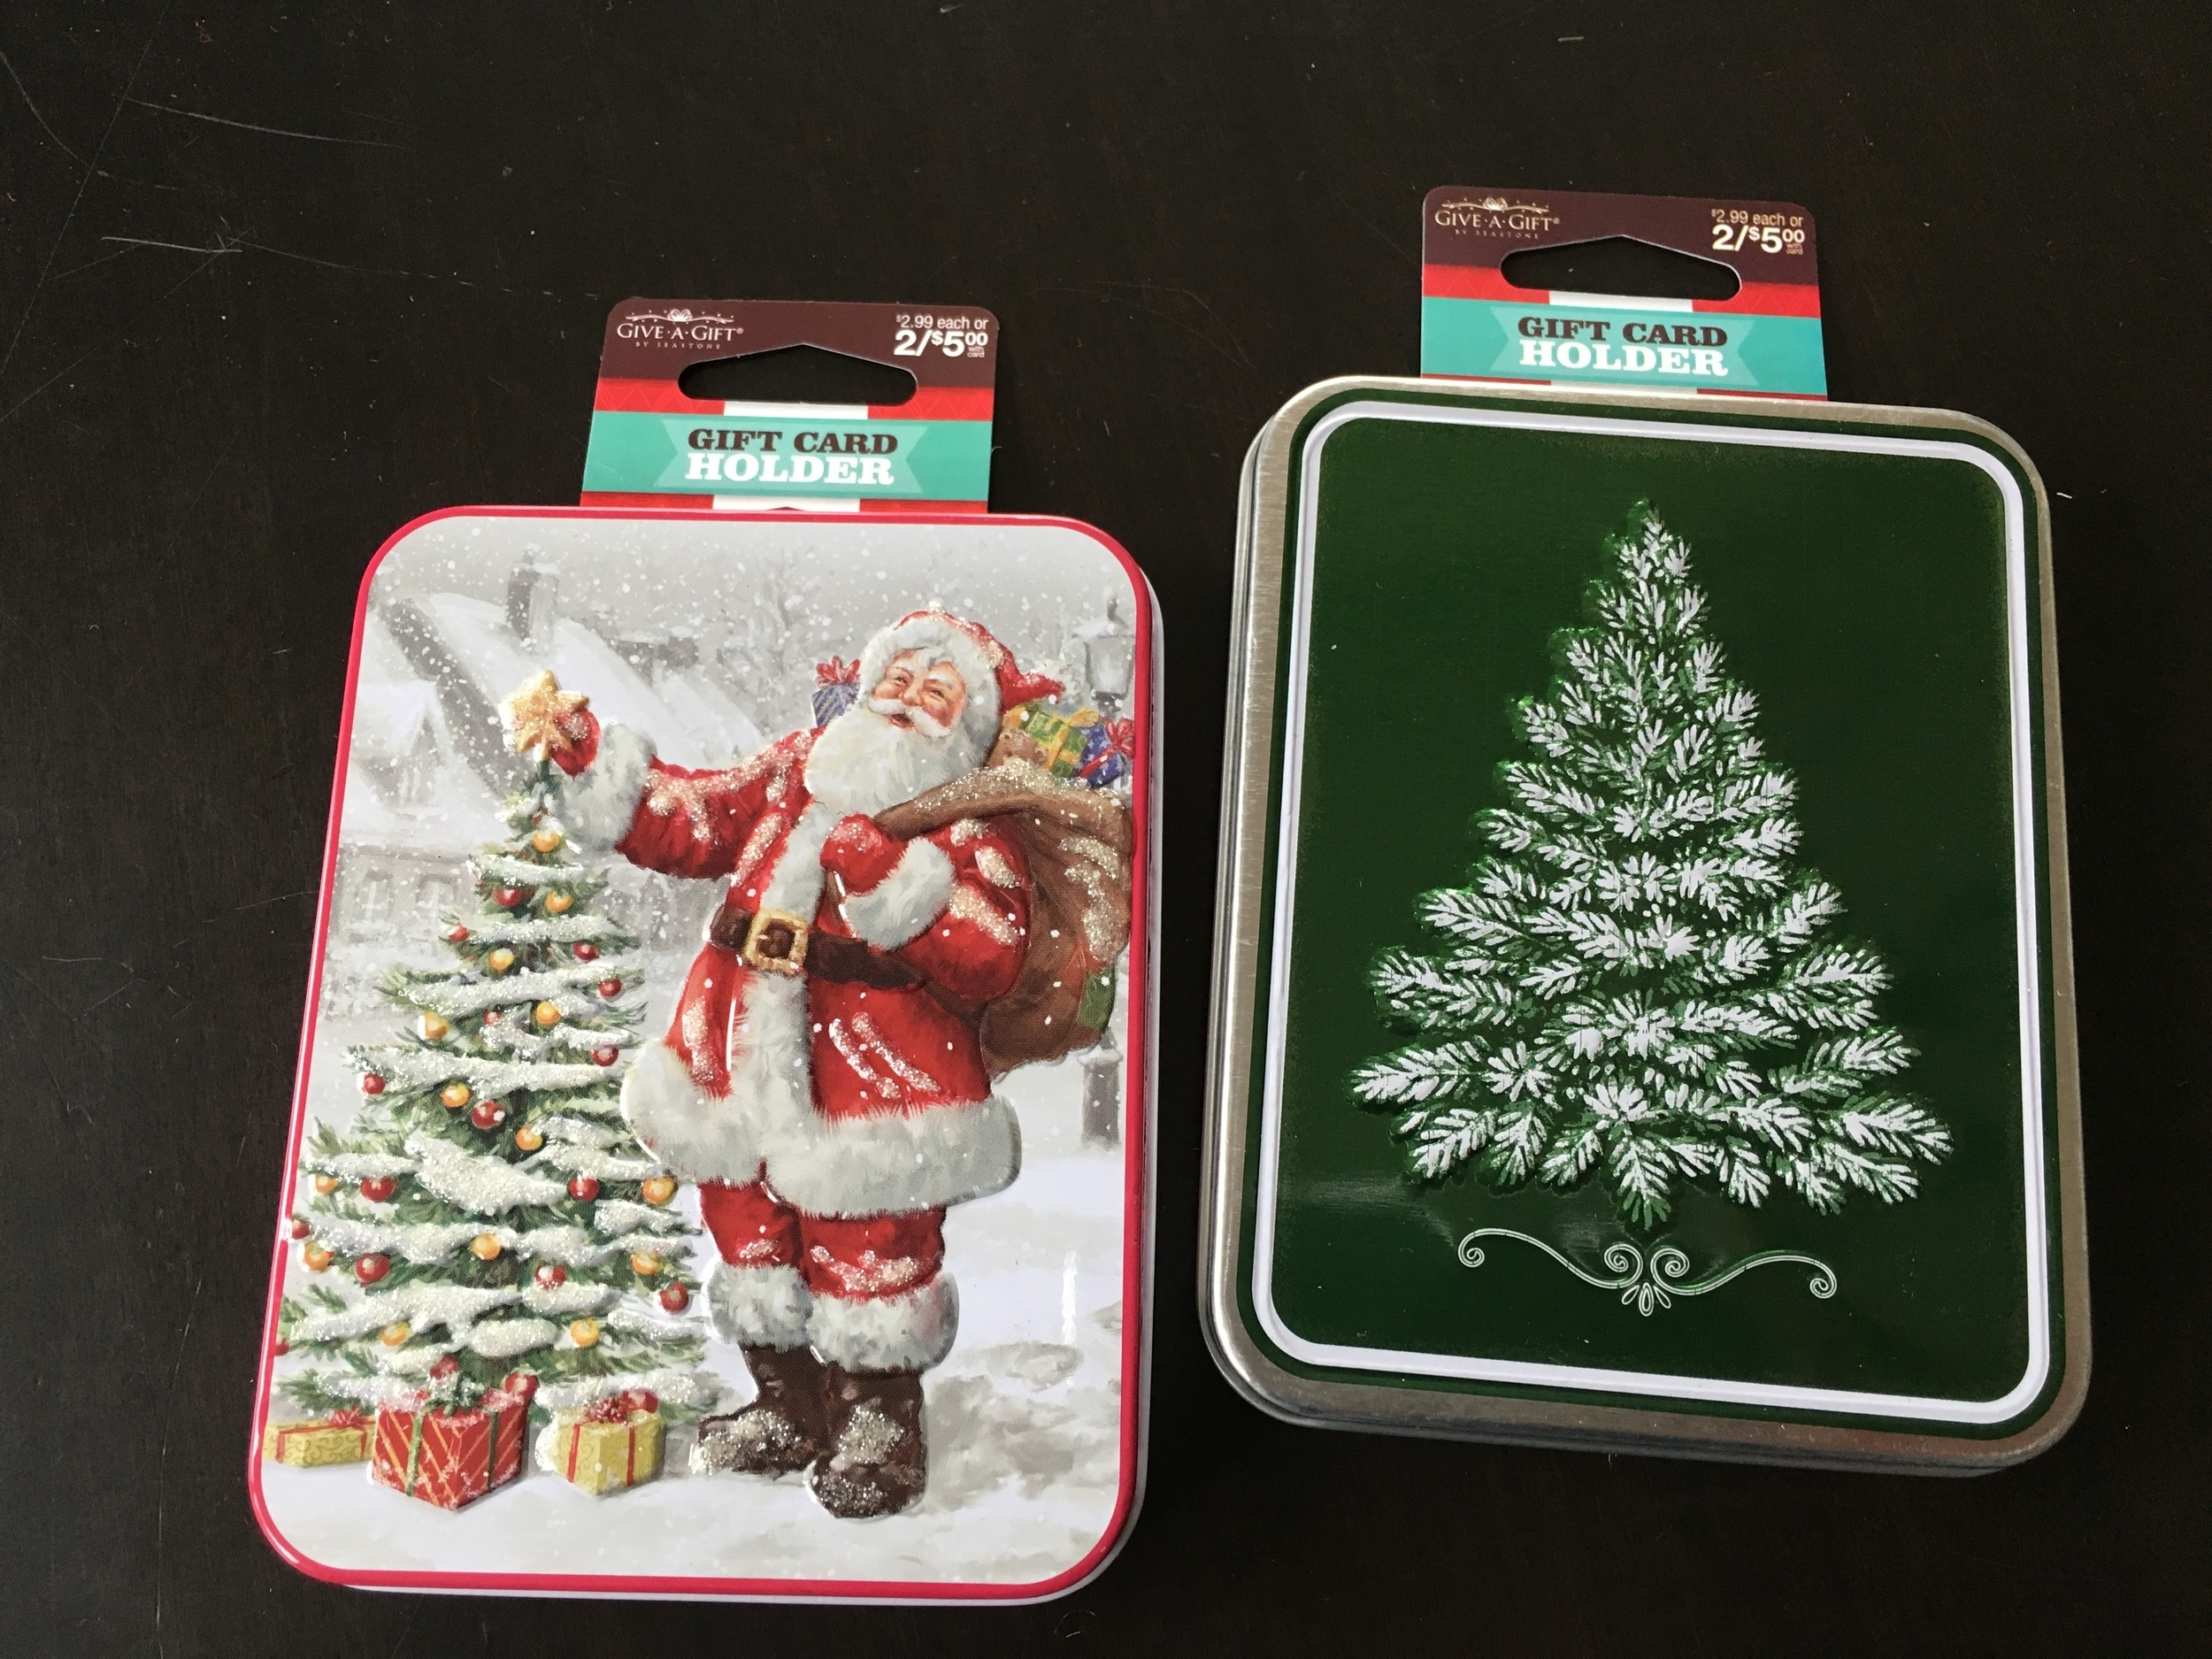 These tins measure 3.5 x 4.5 inches and are a half inch thick. Inside is a black fake velvet insert with a little area to nestle the gift card. After, the insert could be taken out and the tin could be used for other treasures. Do the math - half of $5.00 is $2.50 for two tins!! Gift card holders should be on your radar when you shop the sales after Xmas this year.